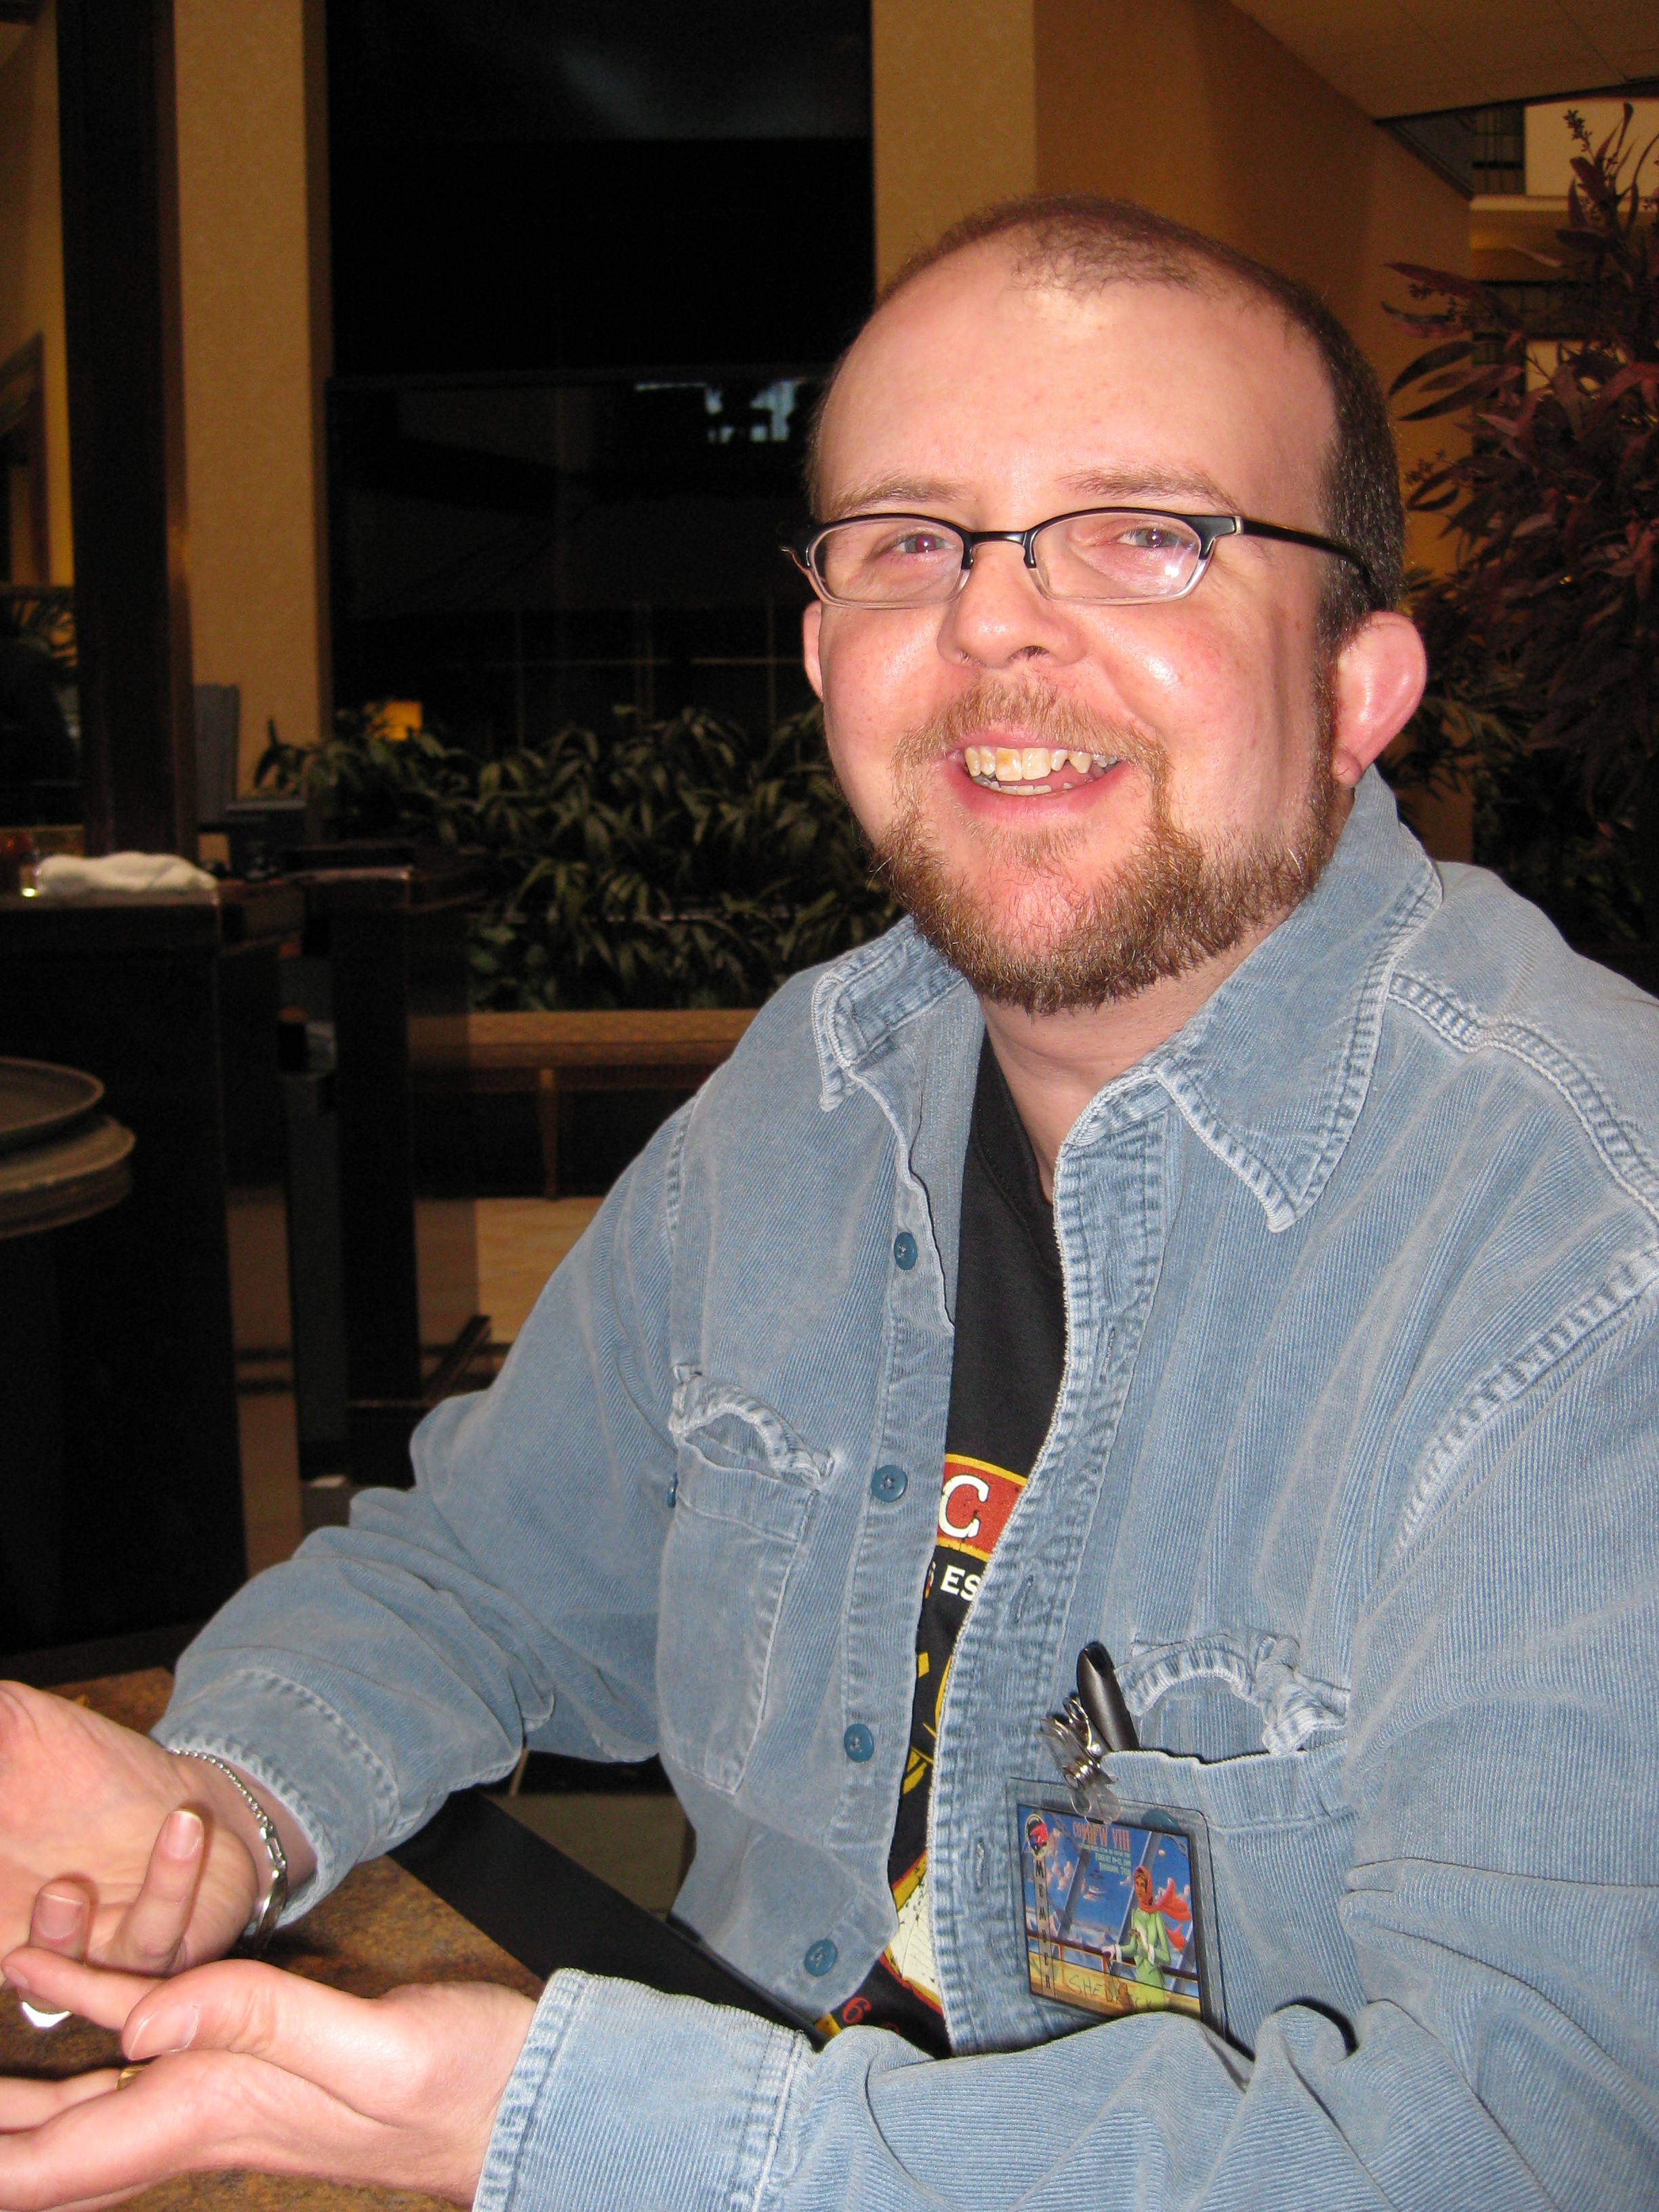 Your author at ConDFW